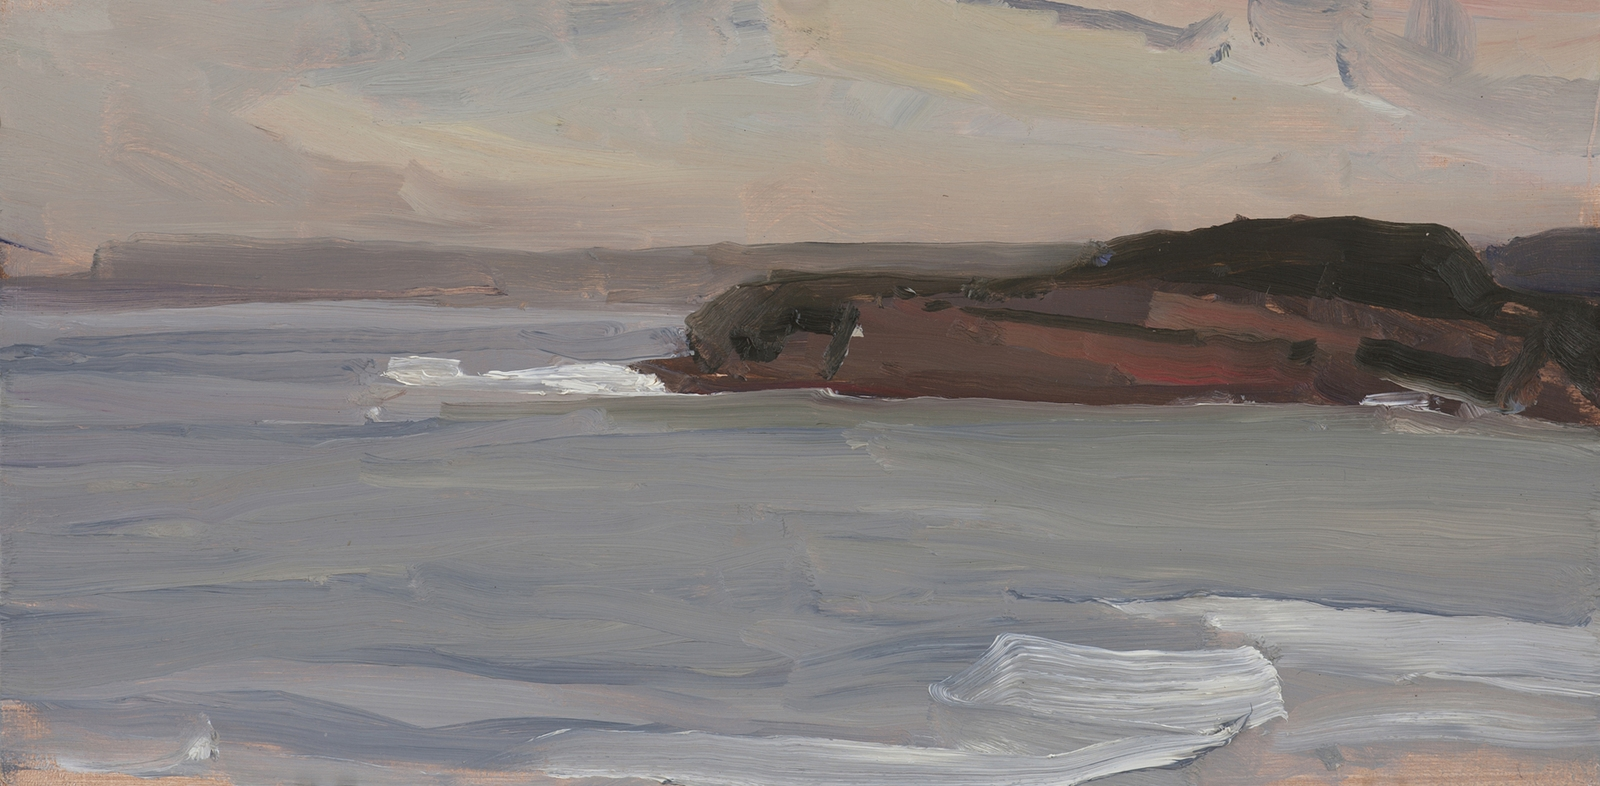 Sketch (Turimetta Head) 2011, no.2 image